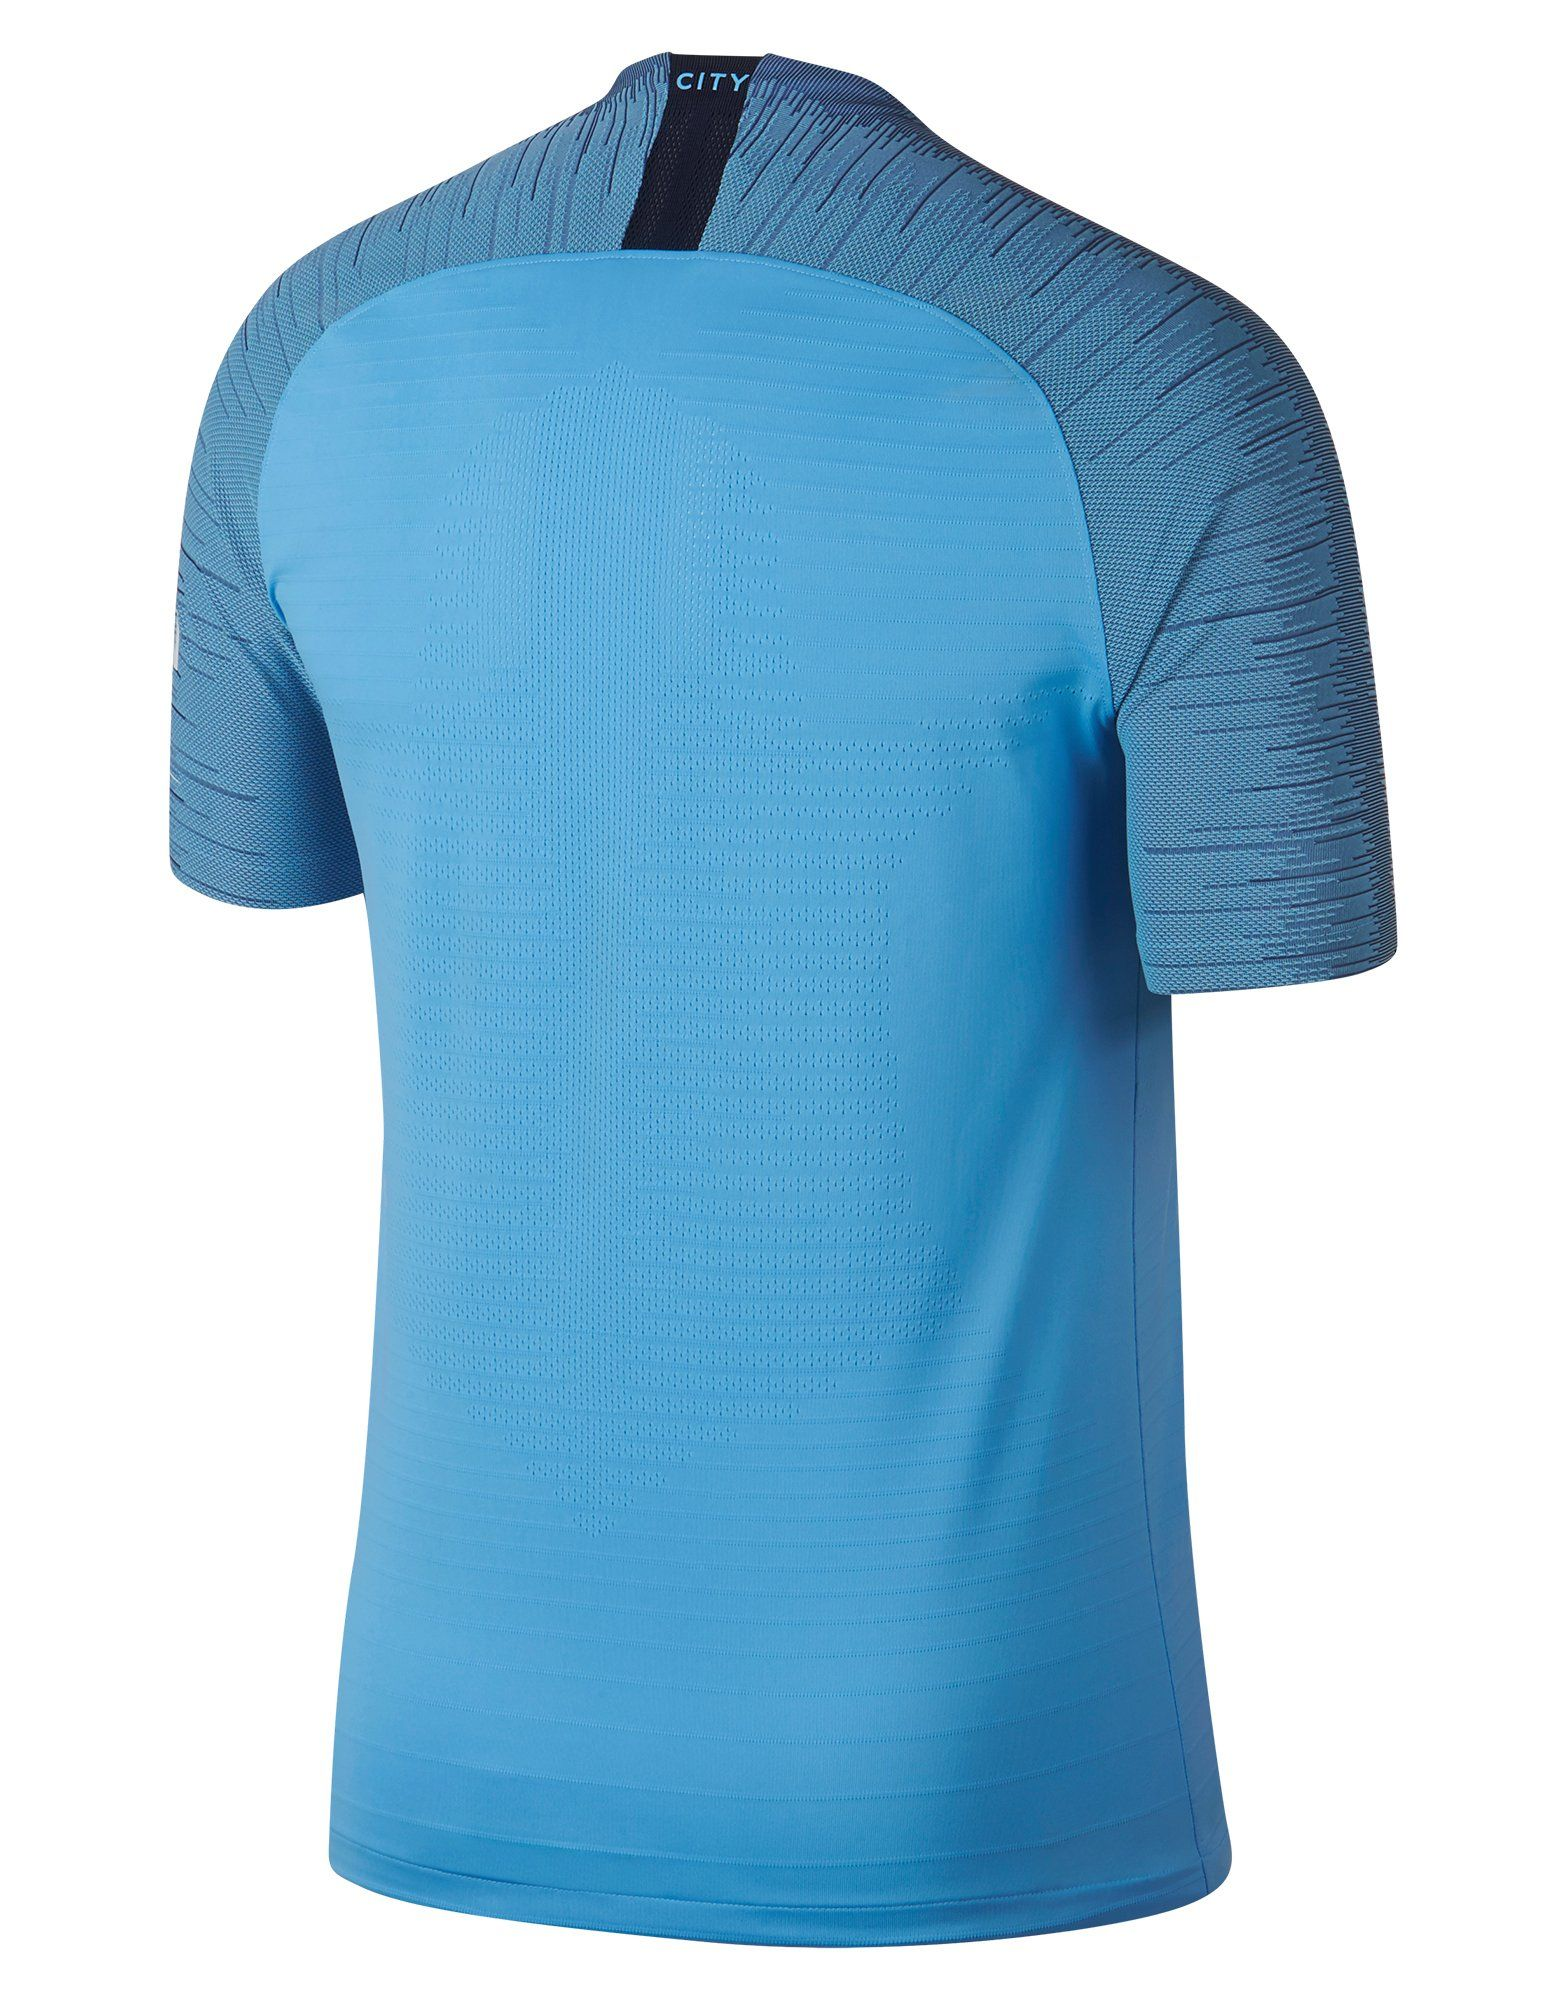 Nike Manchester City 18/19 Home Vapor Shirt Blau